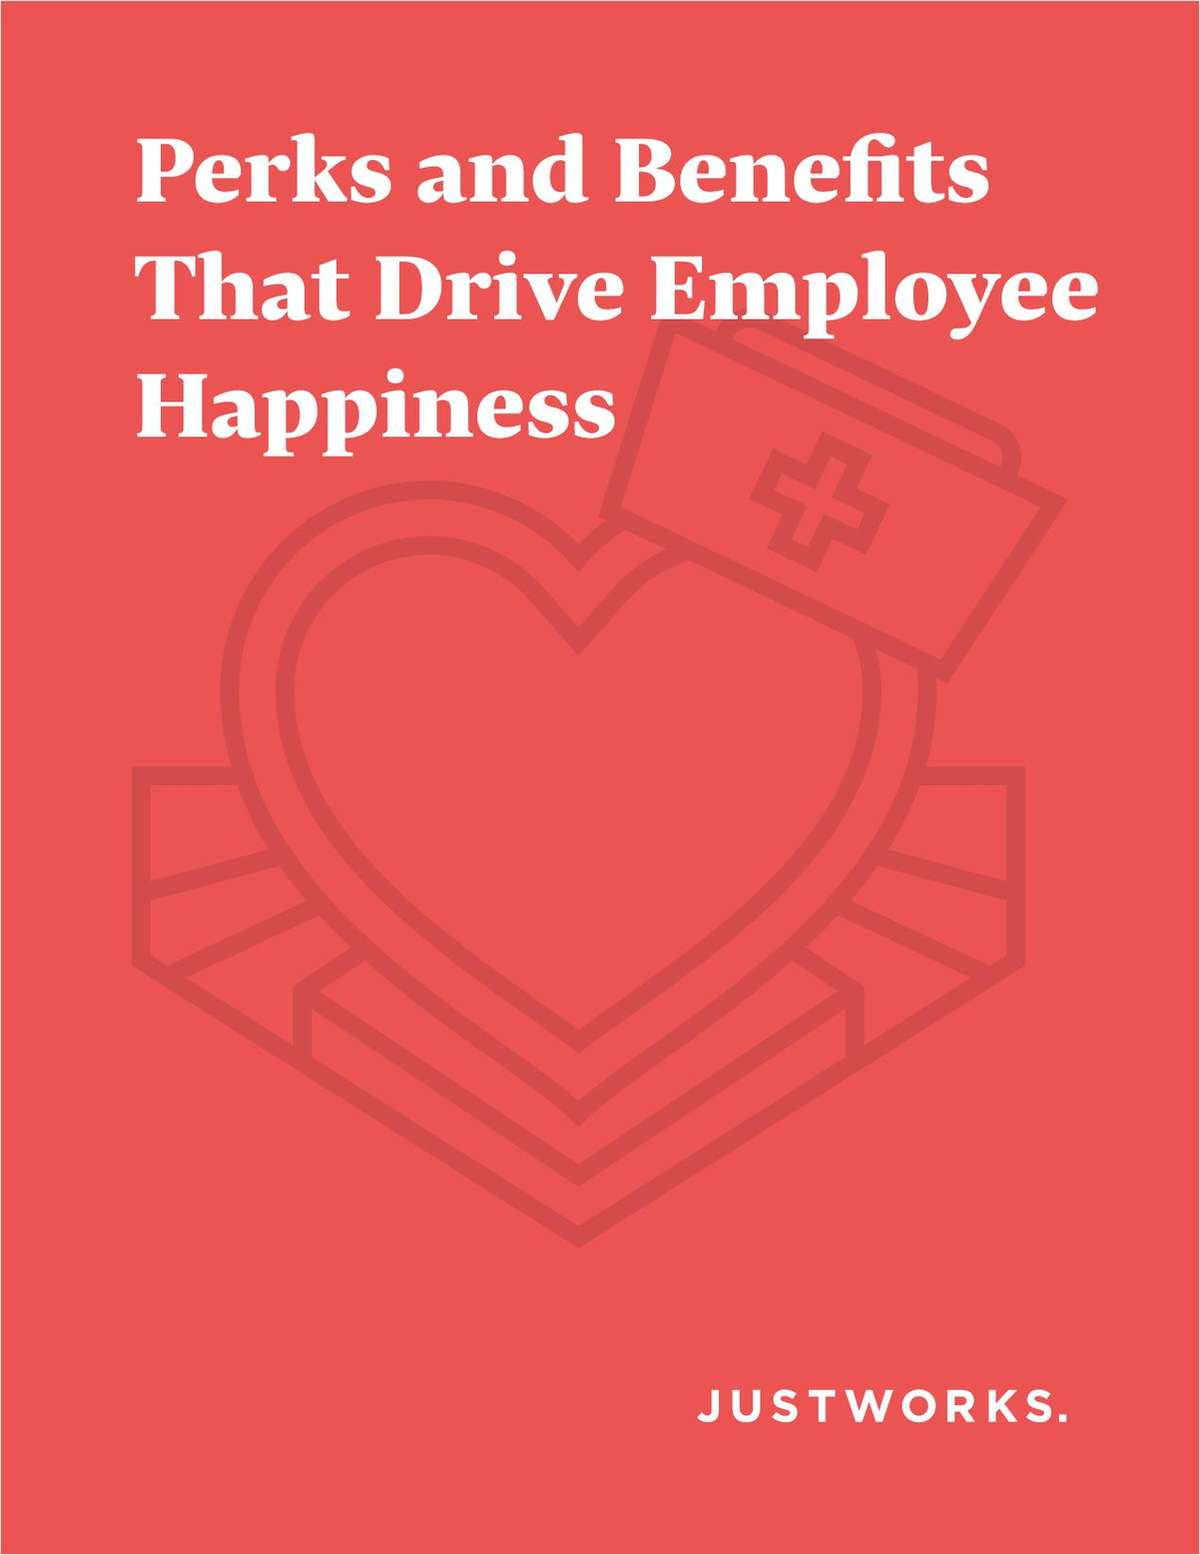 Perks and Benefits That Drive Employee Happiness